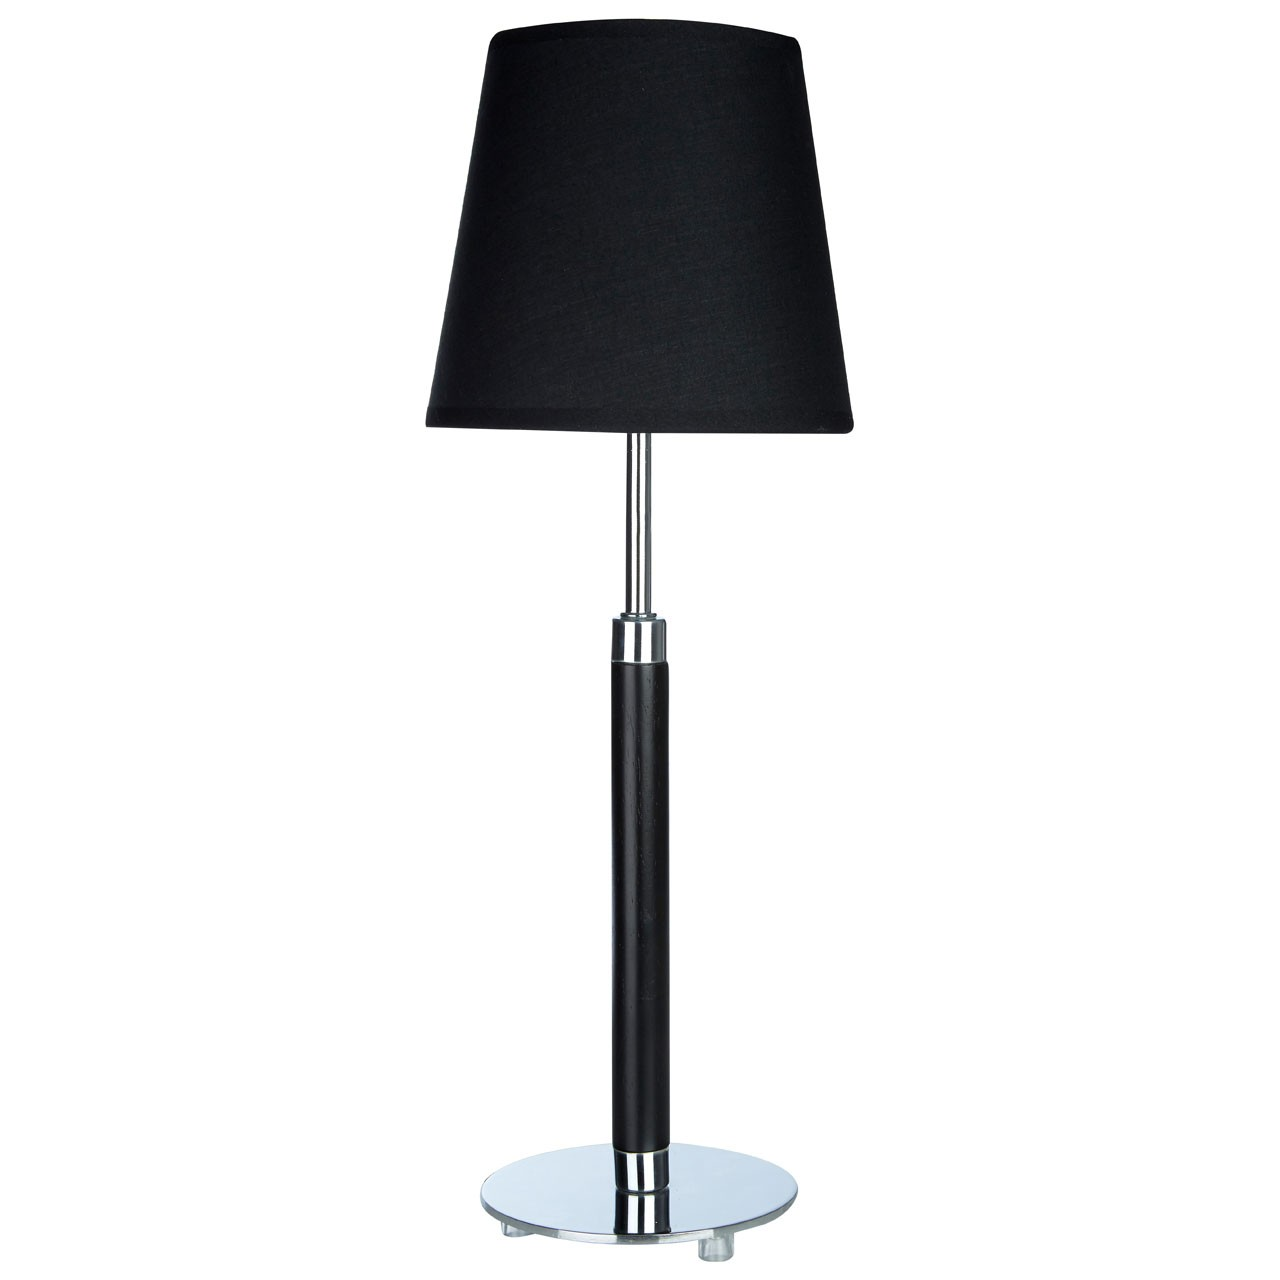 Prime Furnishing Whitney Table Lamp, Chrome - Black